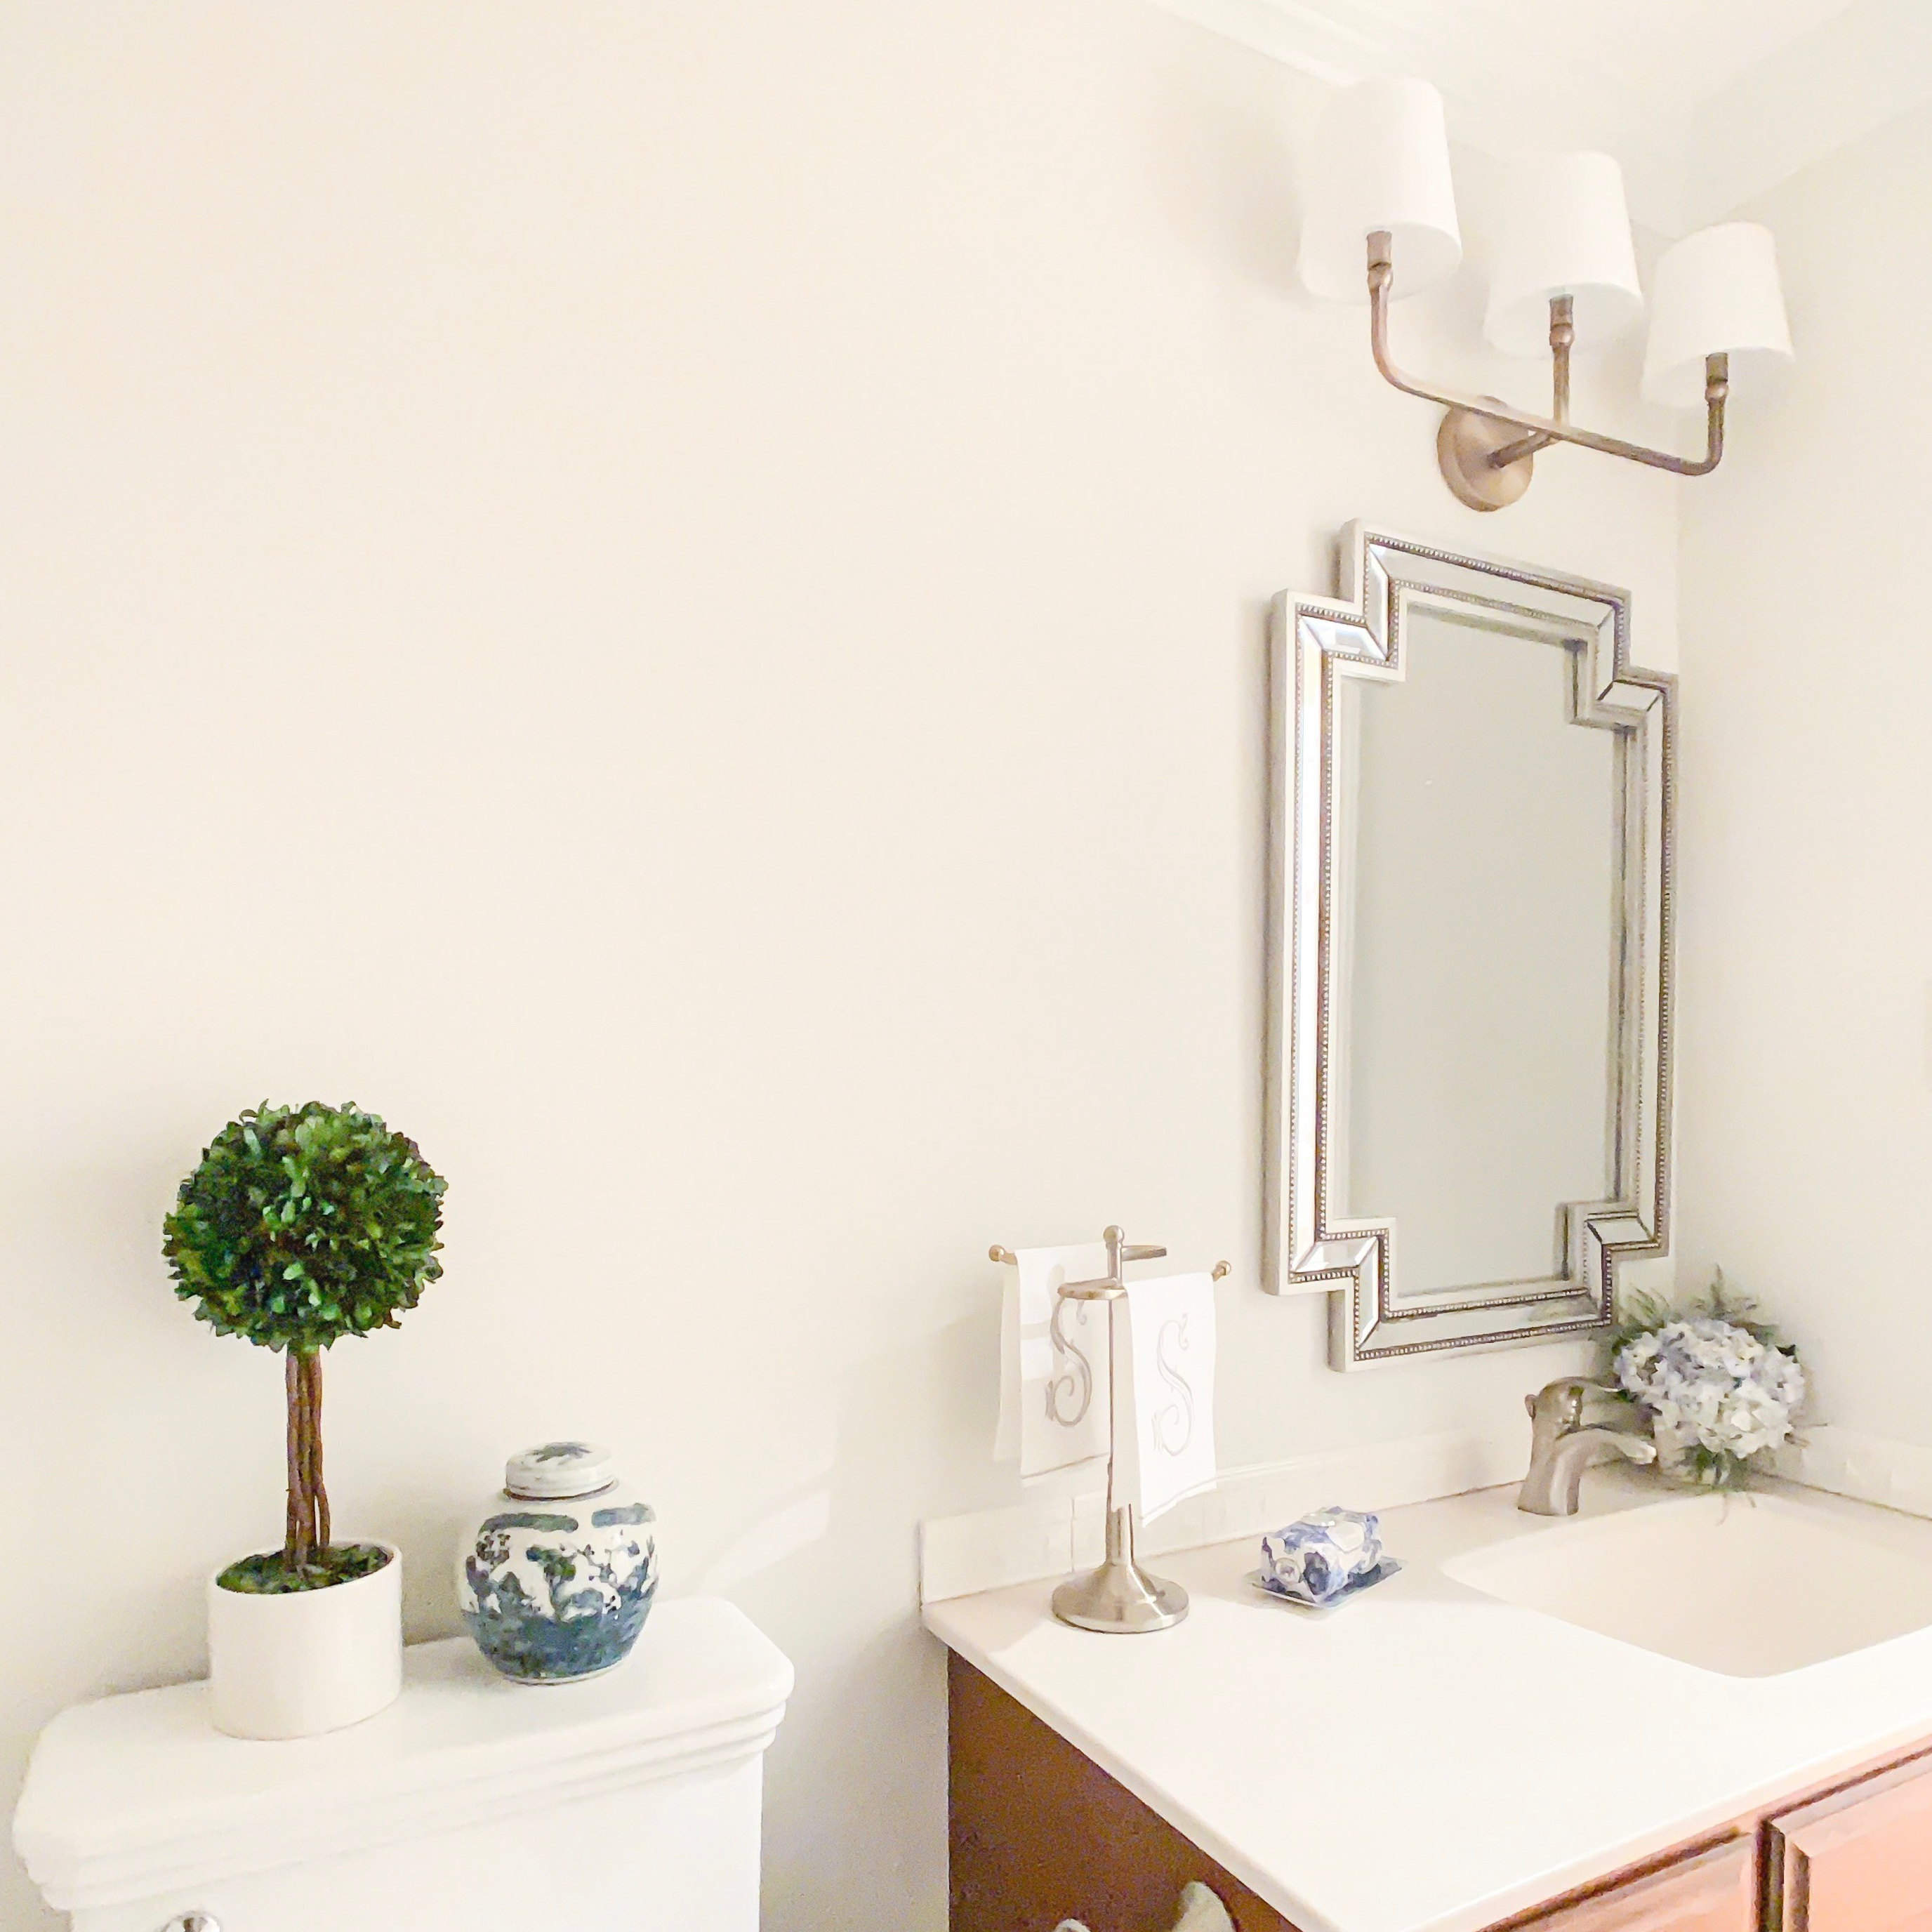 Styling Gypsy Interior Design traditional powder room featuring geometric beaded mirror, aged brass triple sconce, blue and white ginger jar, preserved boxwood topiary and other bathroom decor. Walls painted Benjamin Moore Classic Gray